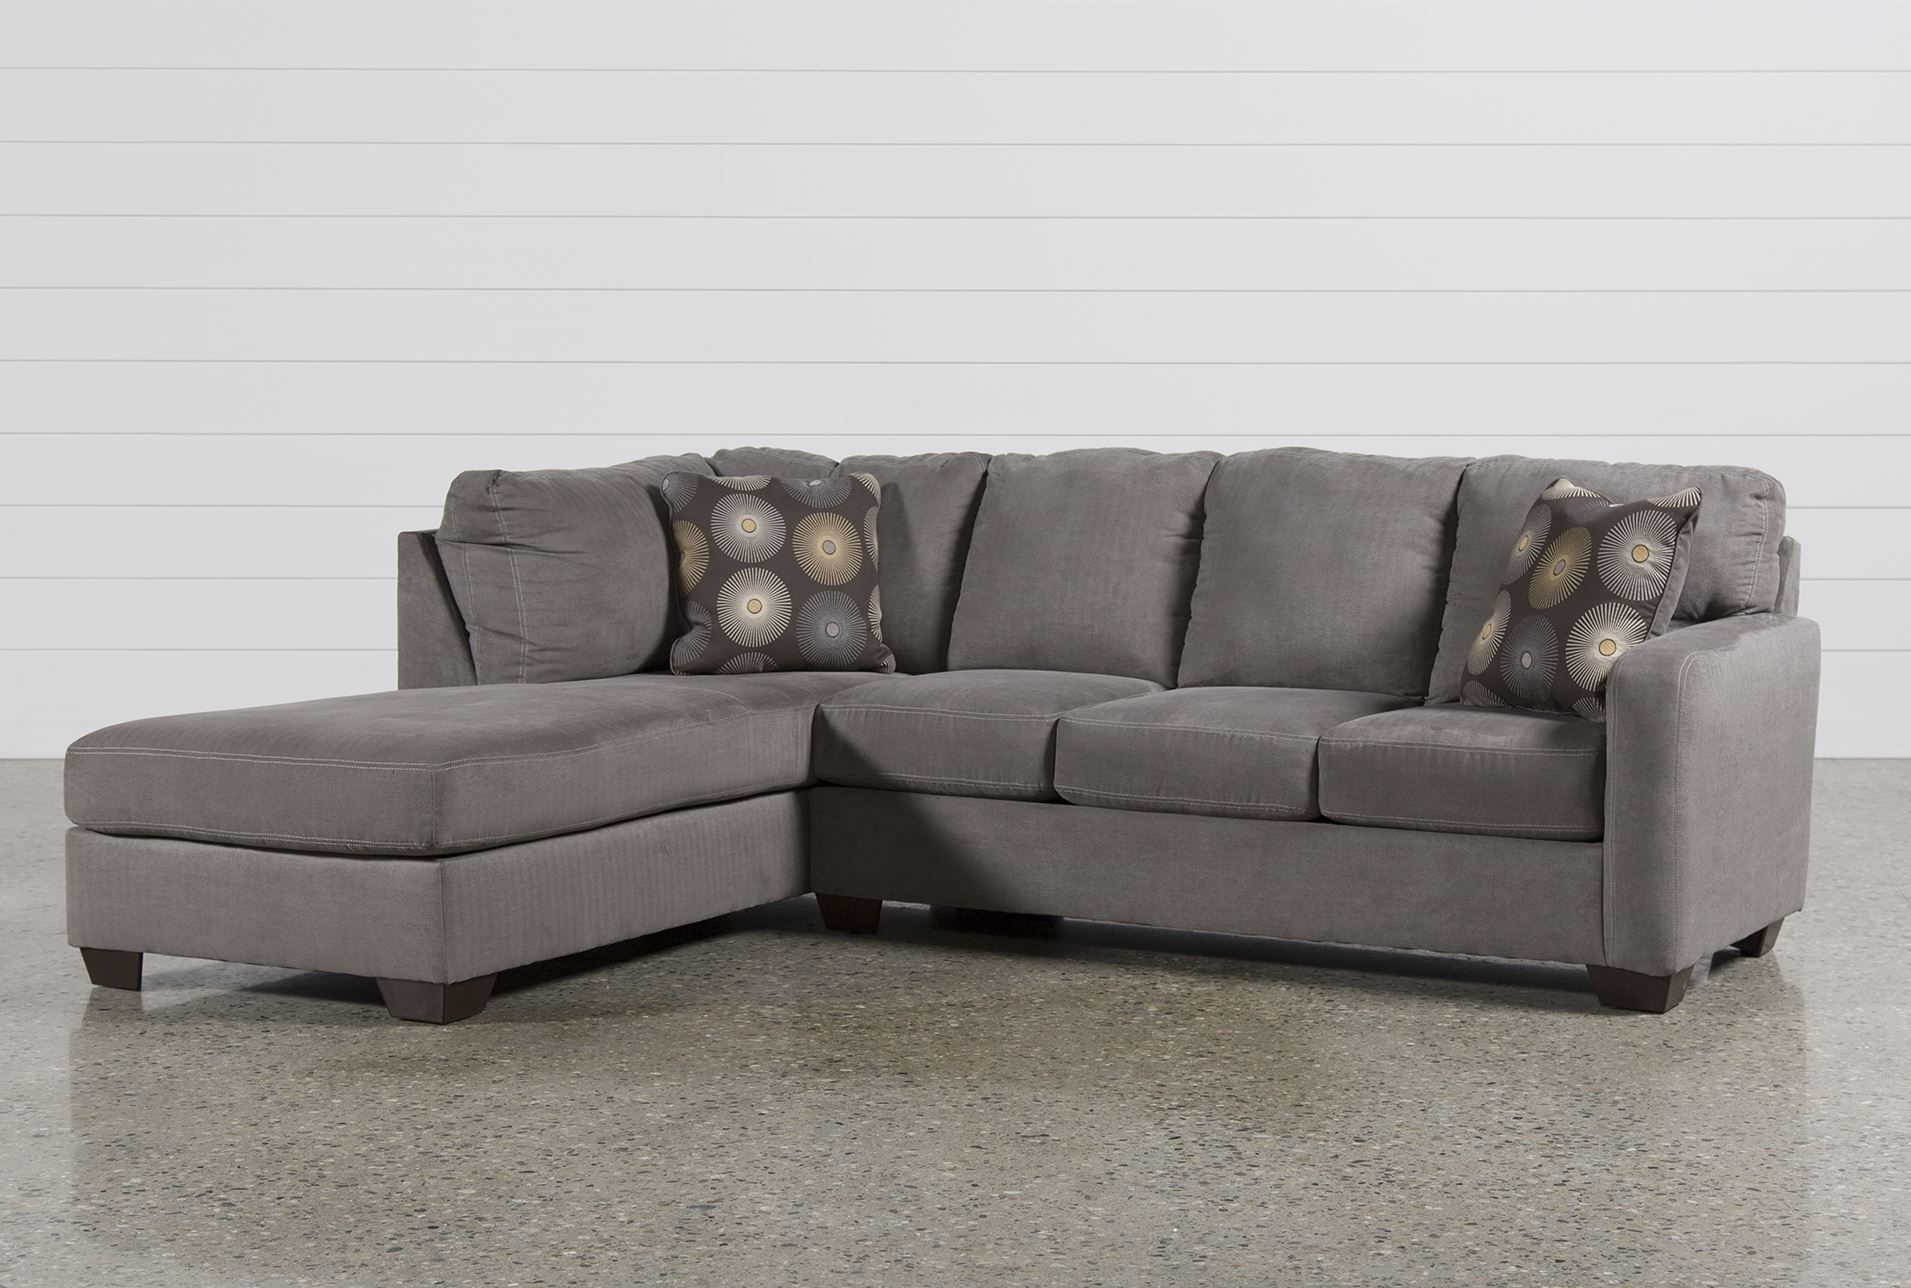 Zella Charcoal 2 Piece Sectional W/laf Chaise - Signature with regard to Aspen 2 Piece Sectionals With Laf Chaise